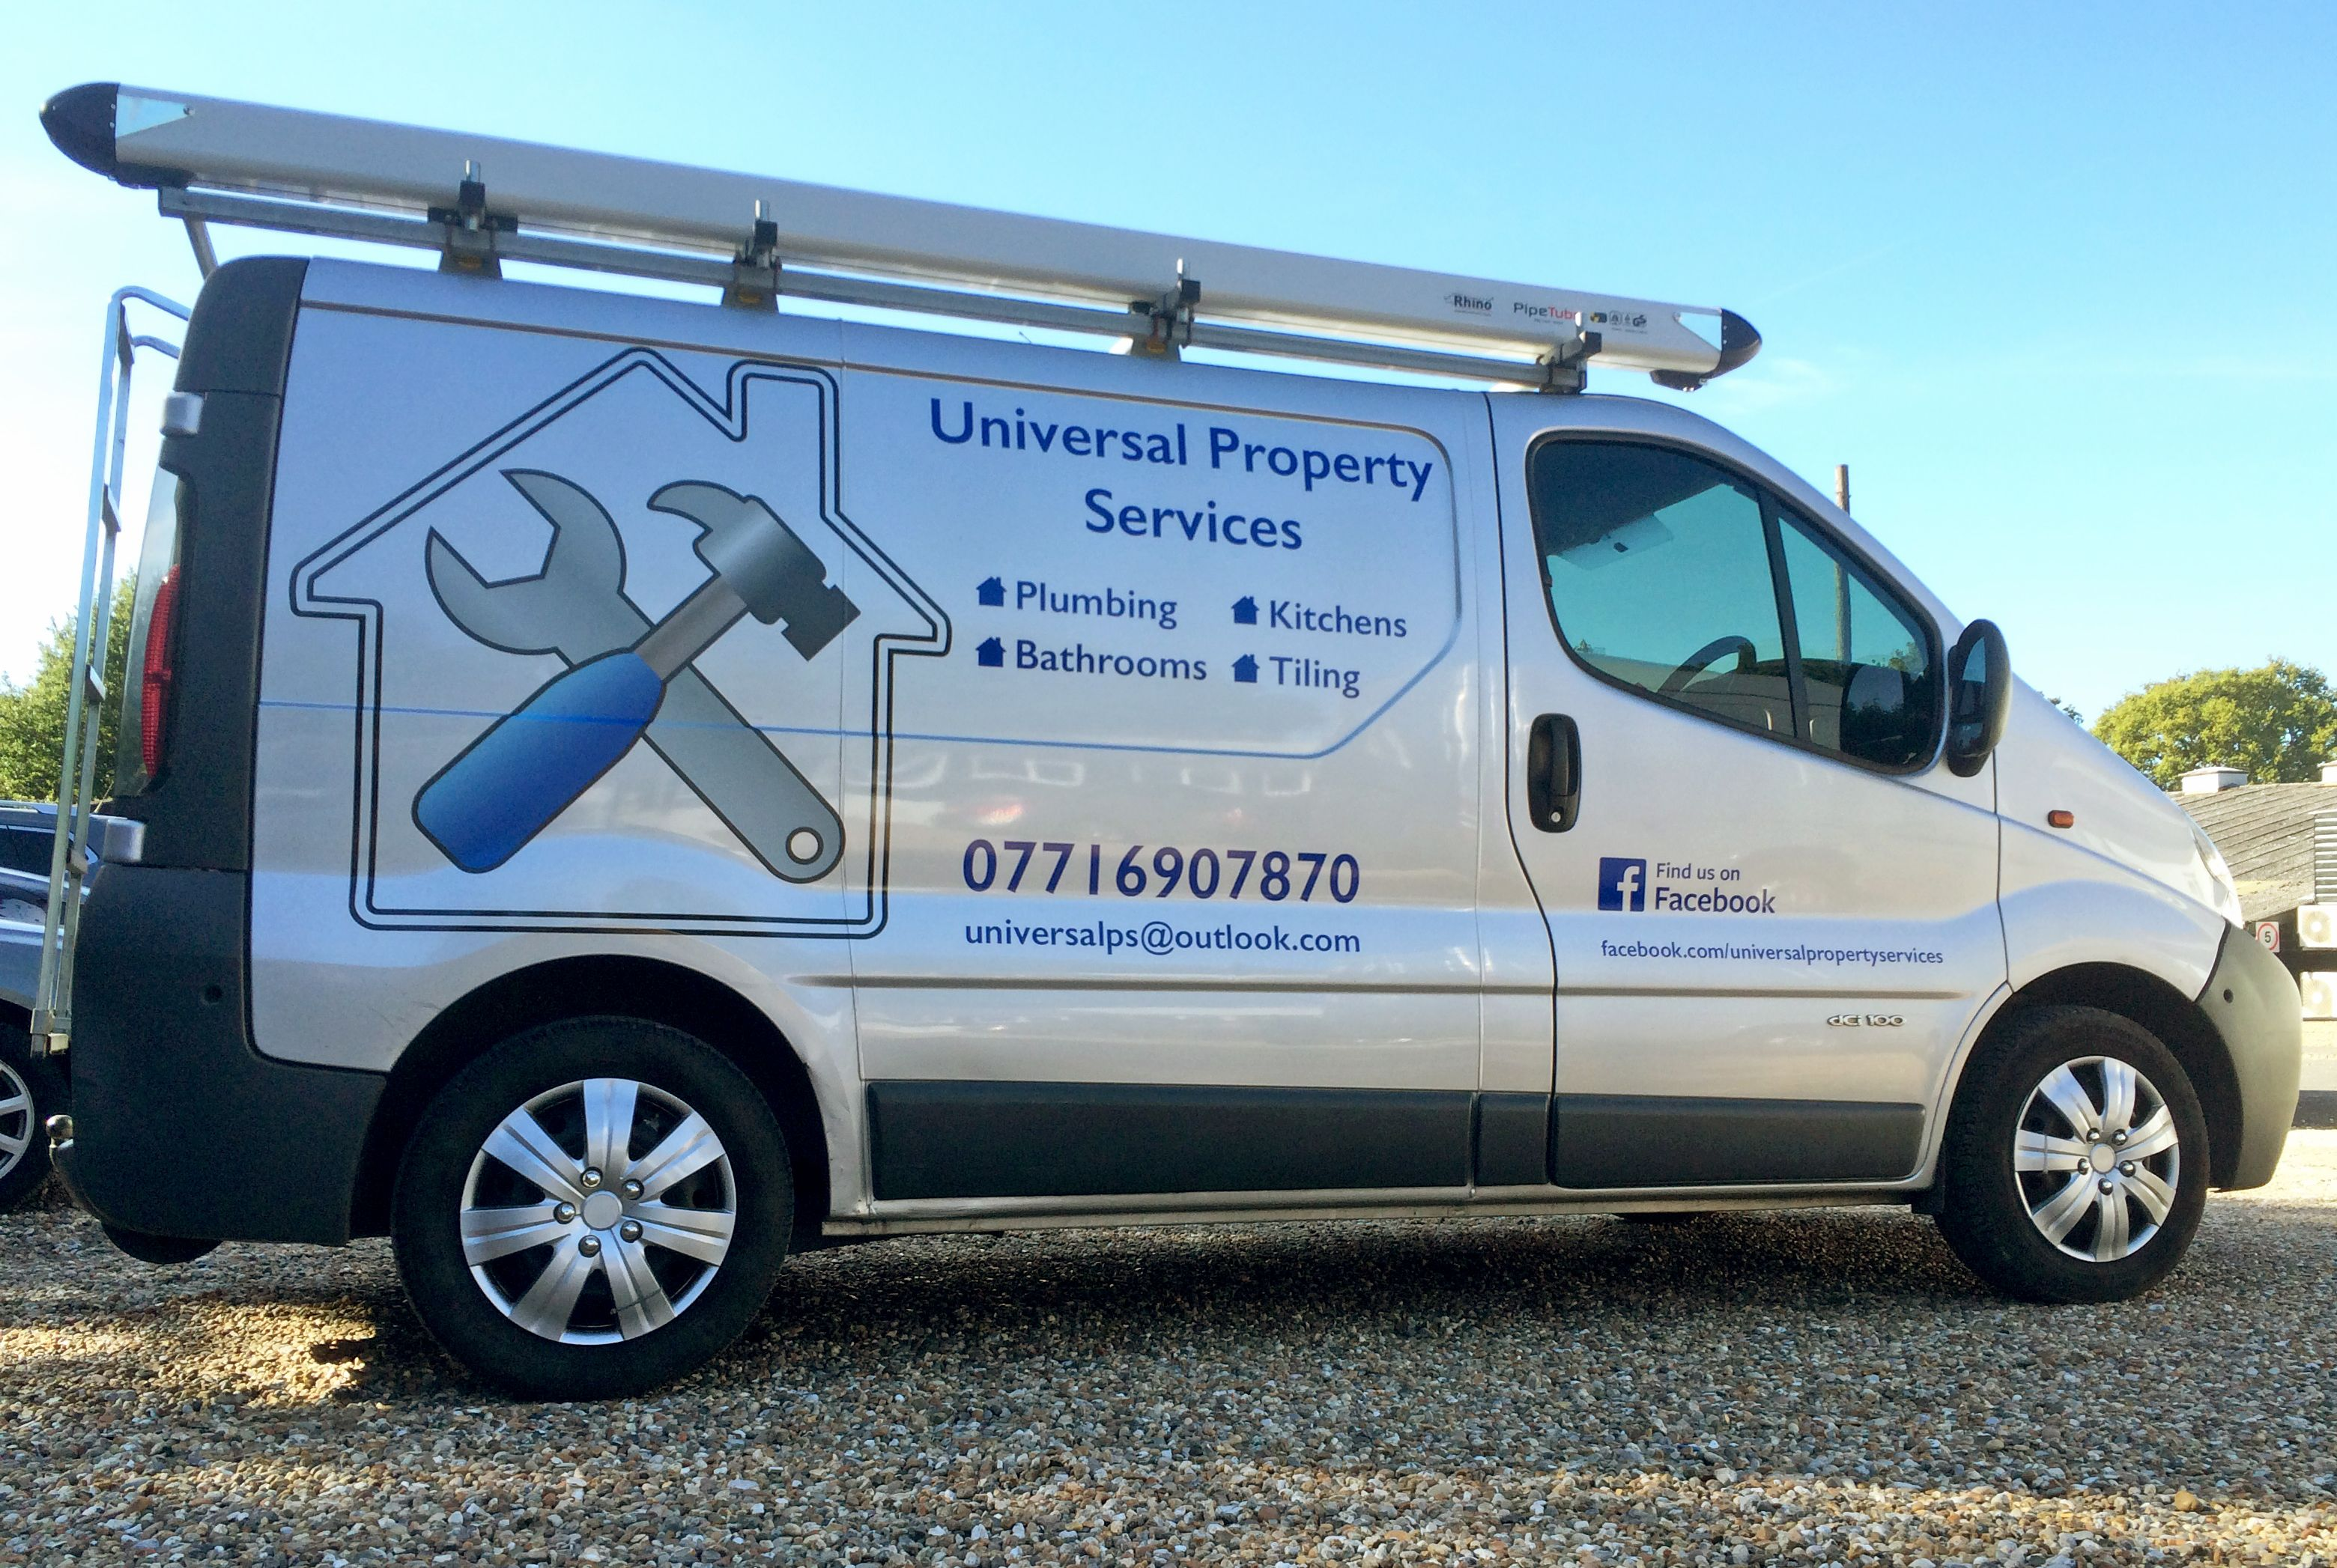 van sign writing templates - universal property services van signwriting by xtreme